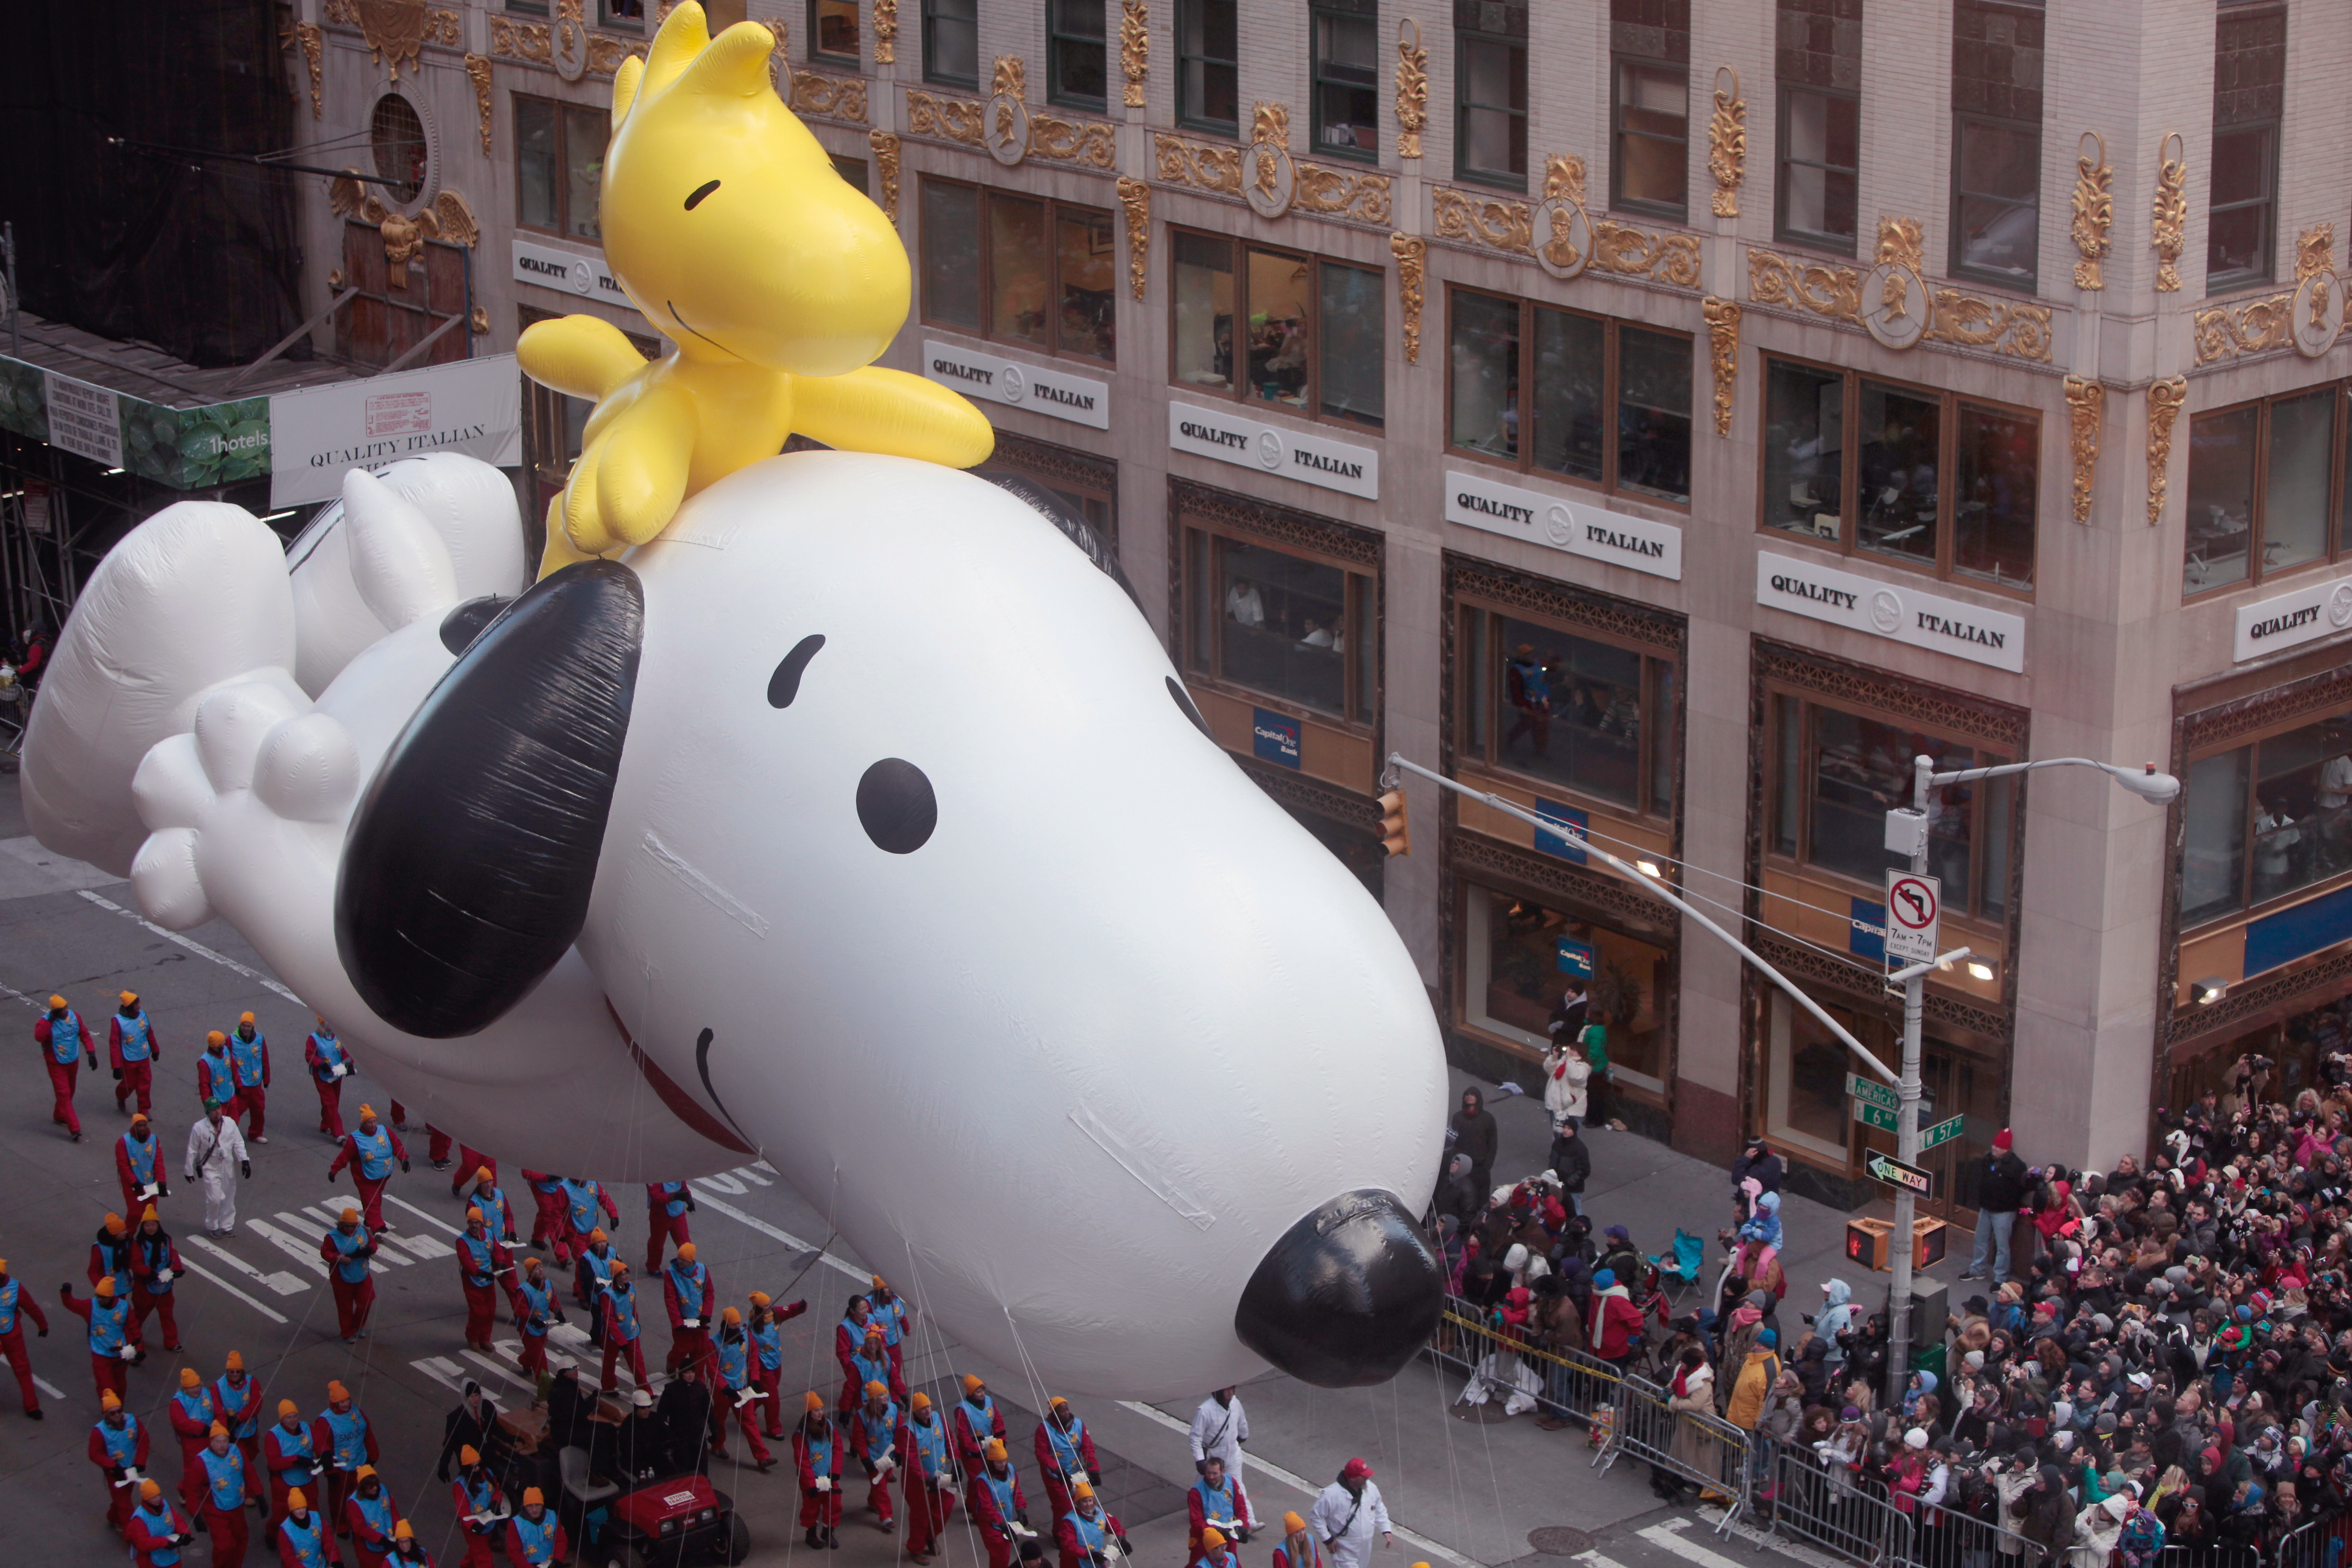 Snoopy and Woodstock float along in Macy's Thanksgiving Day Parade. Despite fears of high winds, the giant balloons made their annual march. For a gallery of the Macy's Thanksgiving Day Parade, go to <a href=